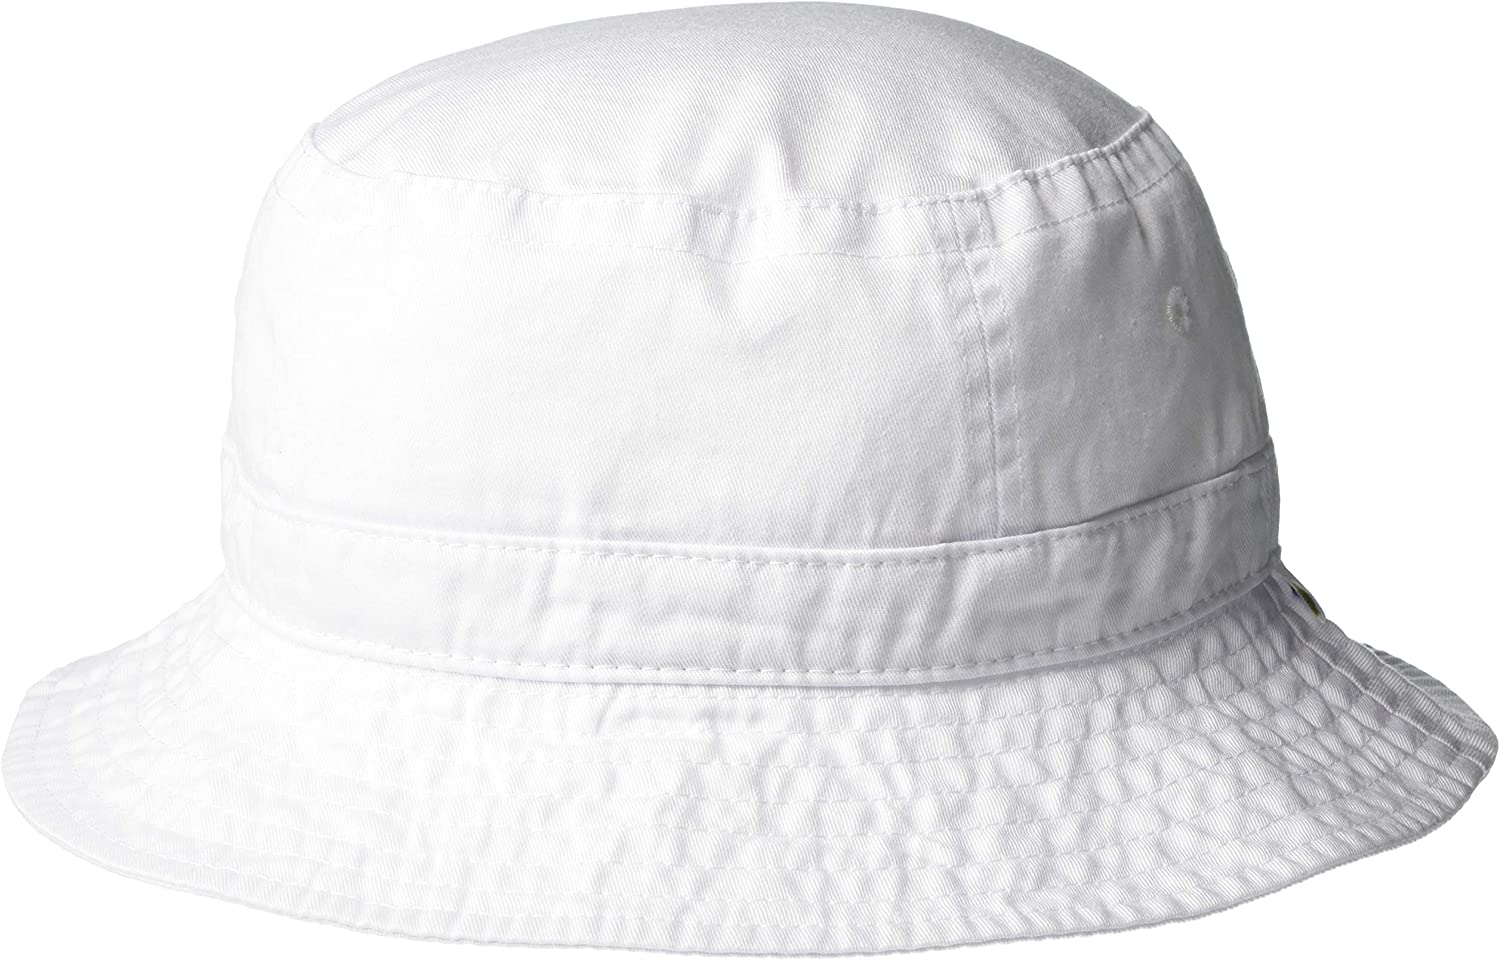 Marky G Apparel Vacationer Pigment Dyed Bucket Hat Cotton